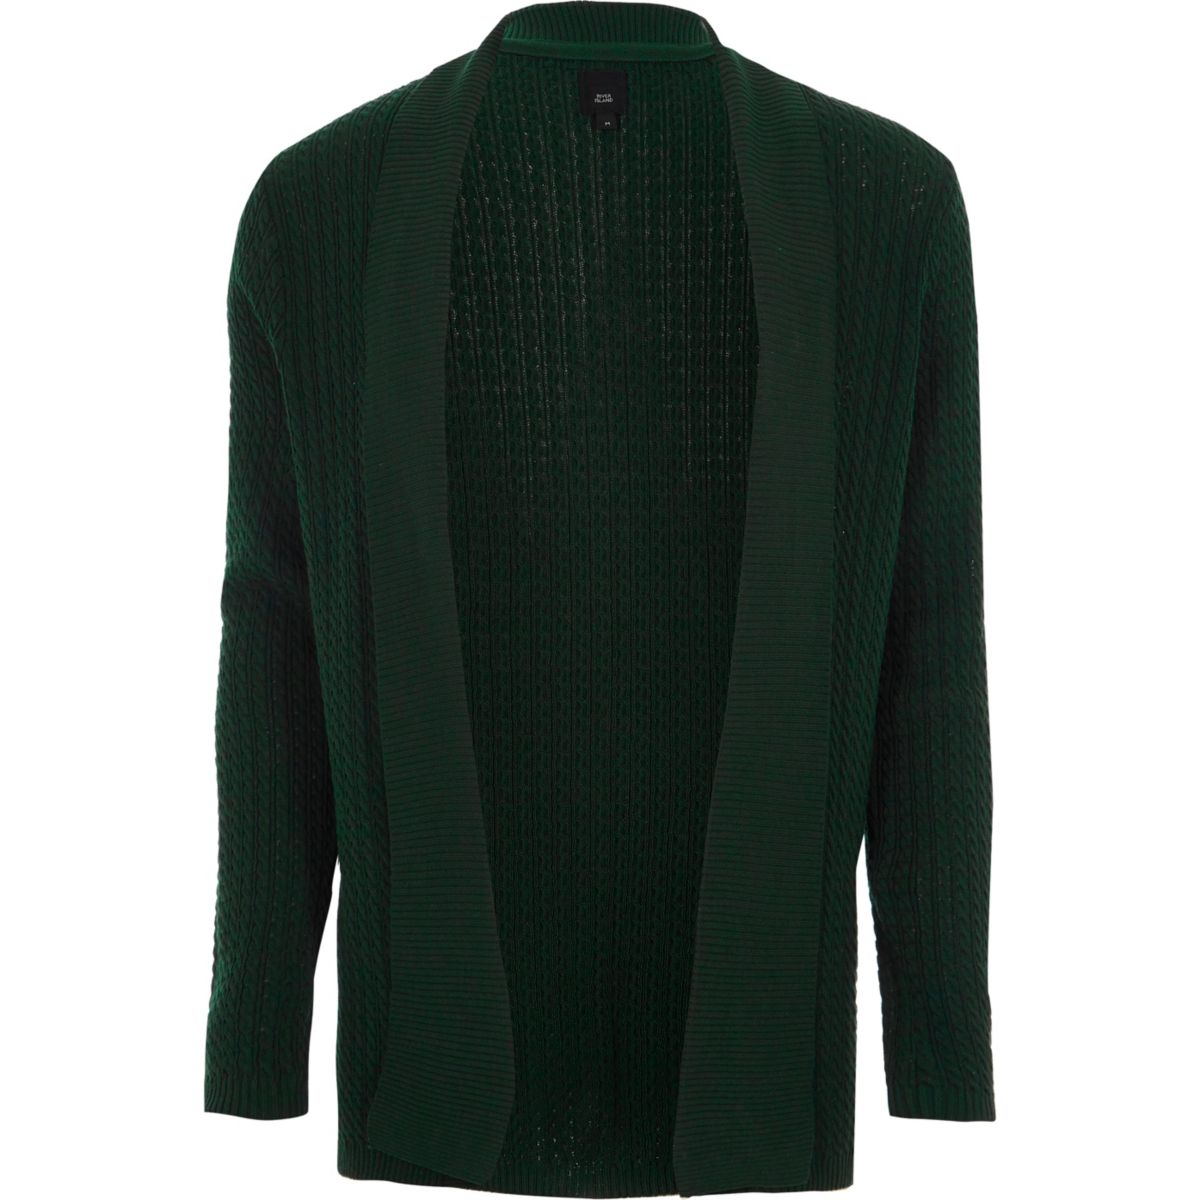 Dark green cable knit open front cardigan